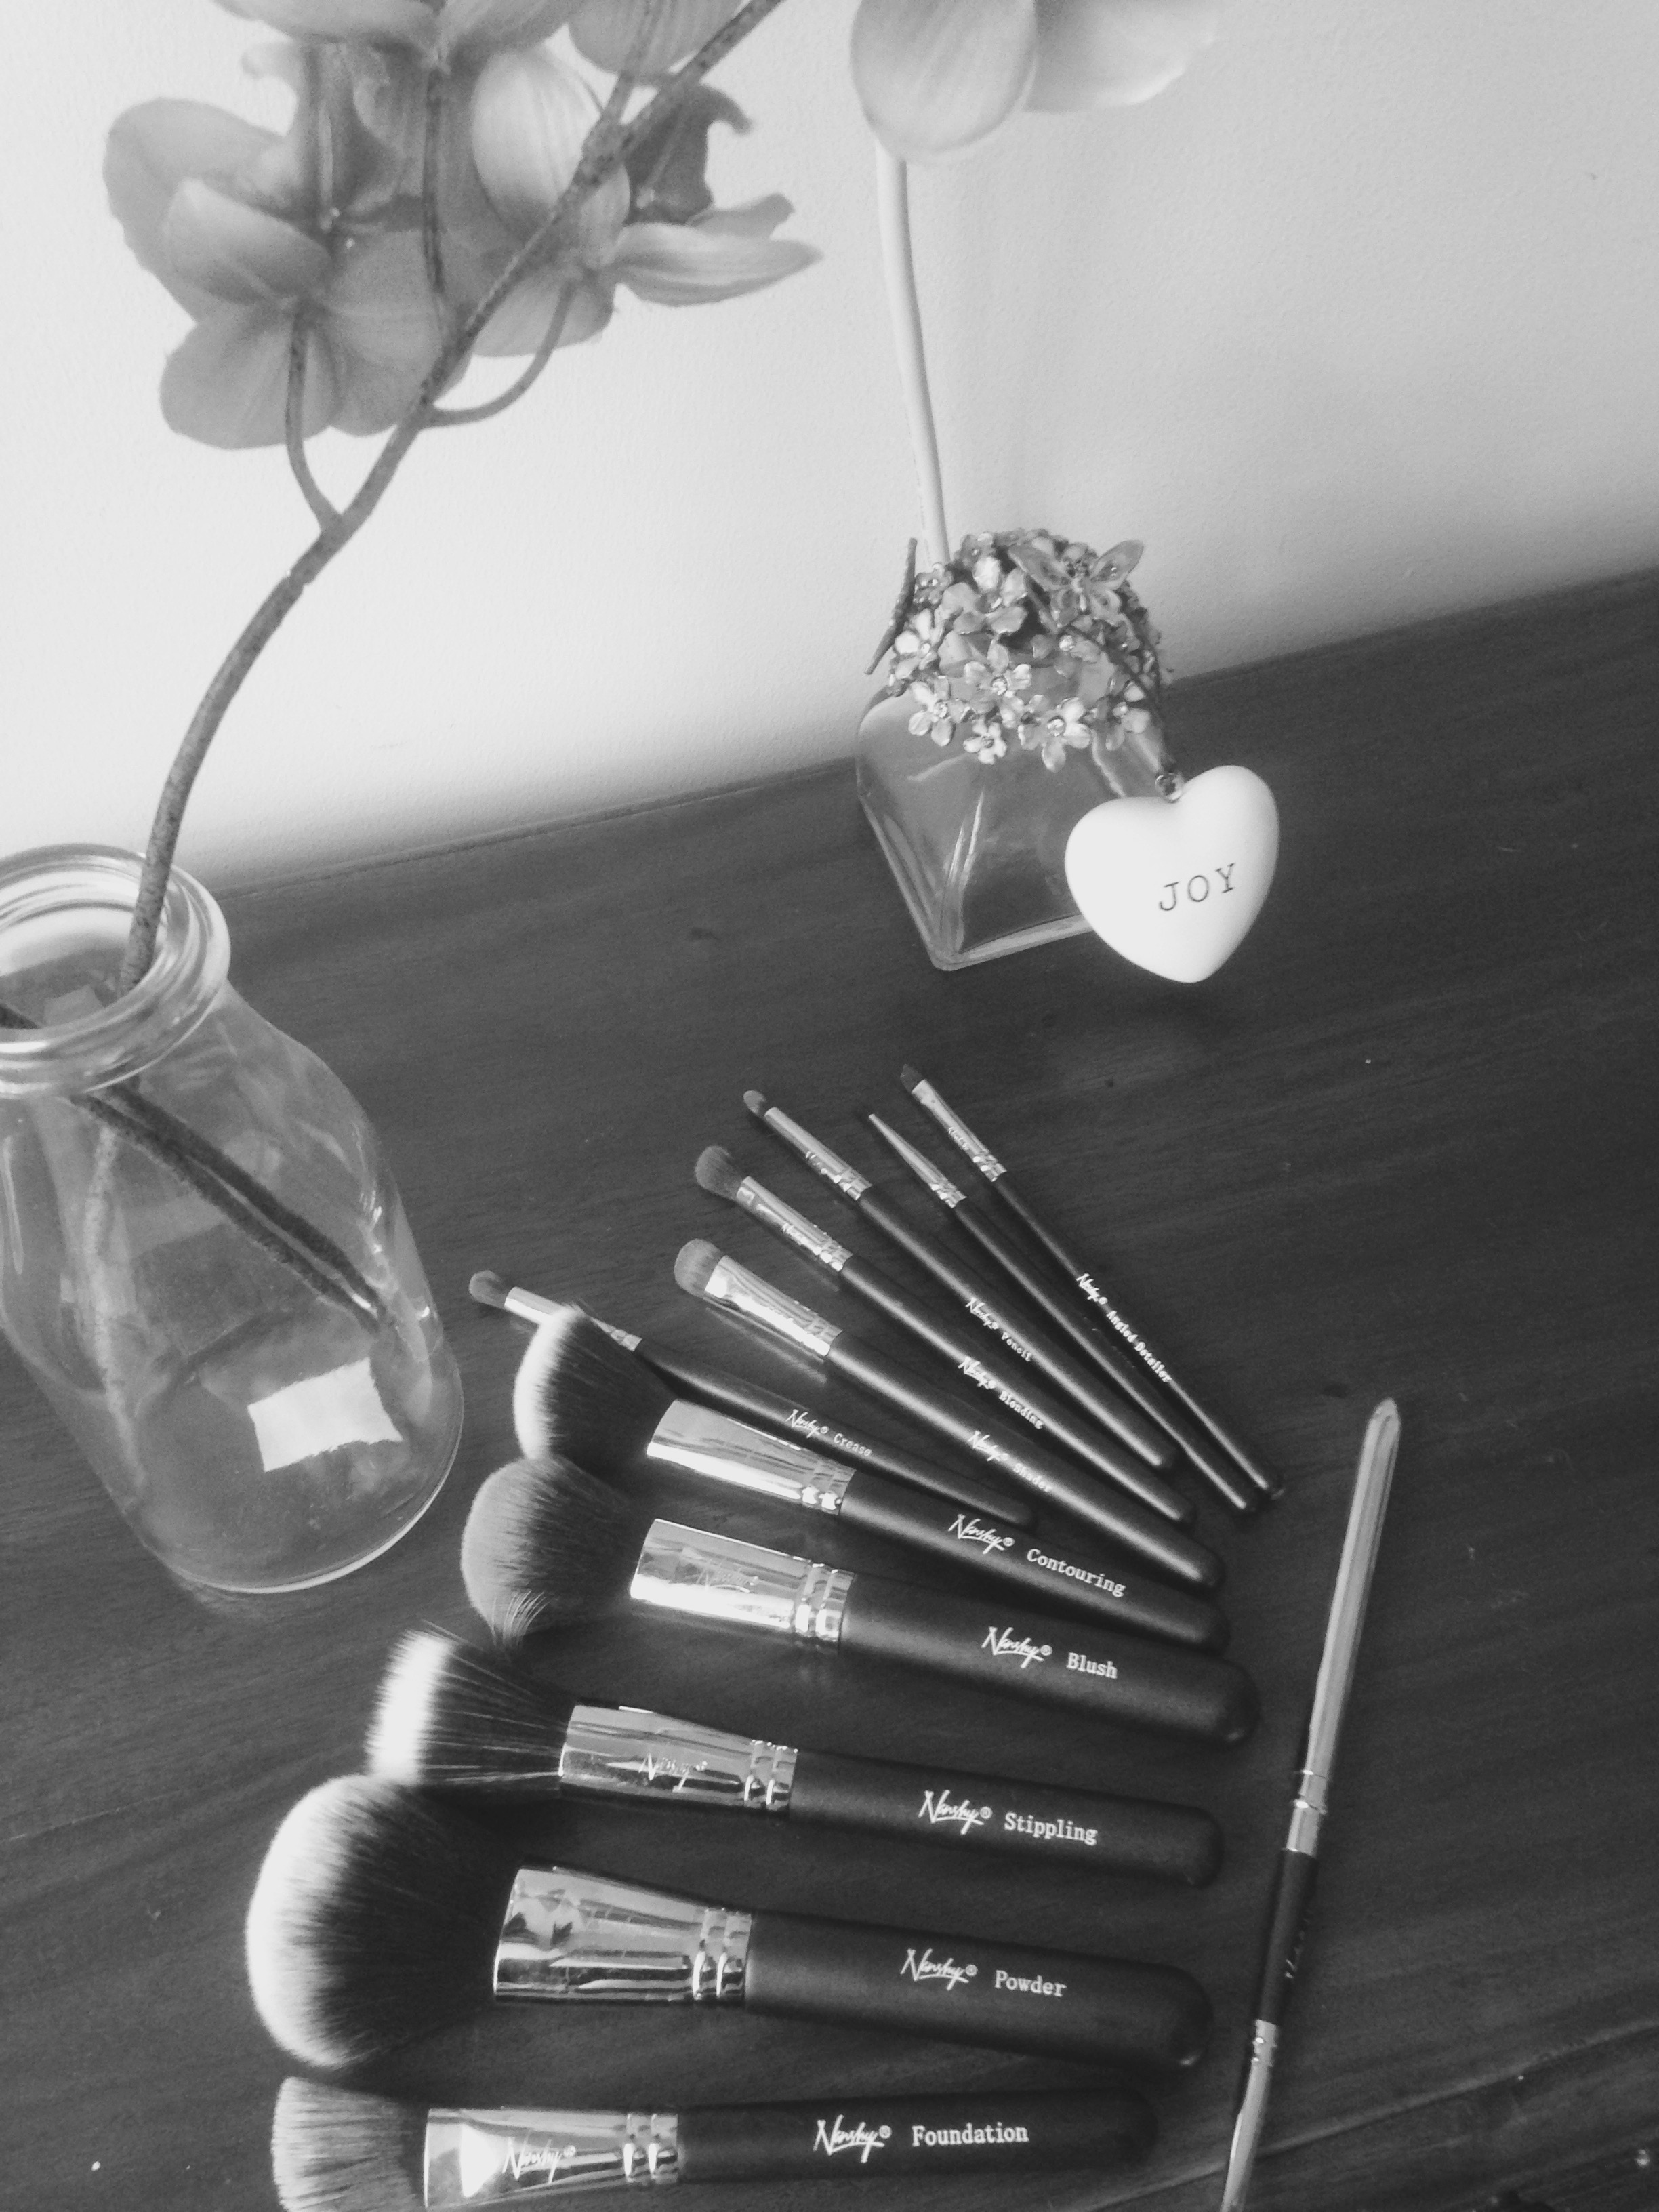 Nanshy Brushes – The new professional brush set